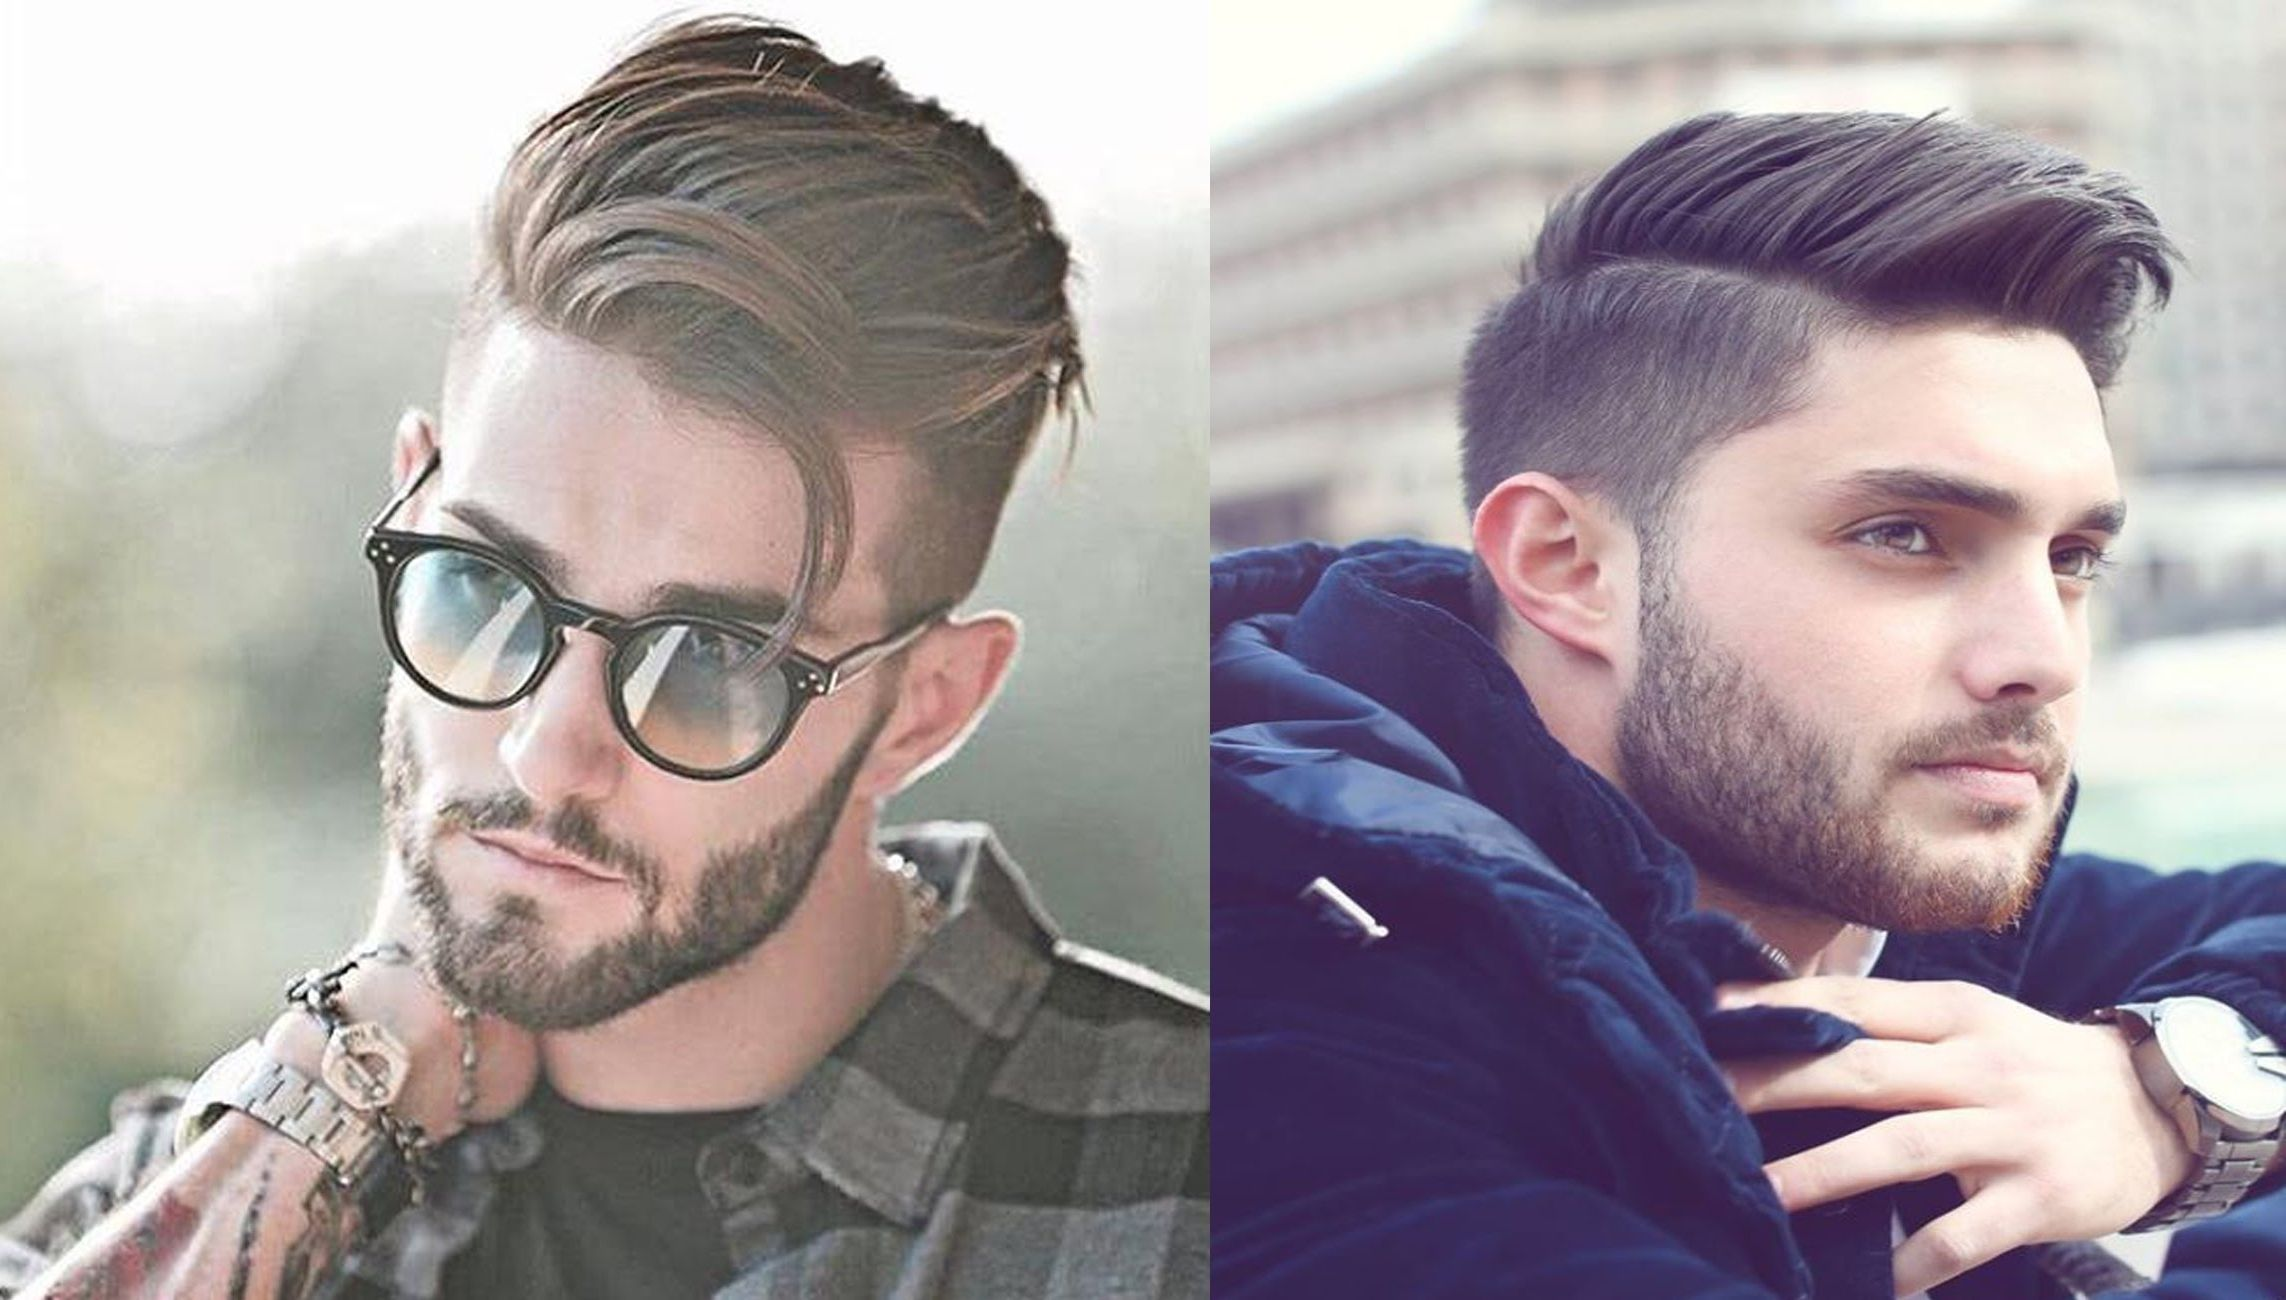 Summer Hairstyles Men 12 Amazing Hairstyles For This Summer For Men ...